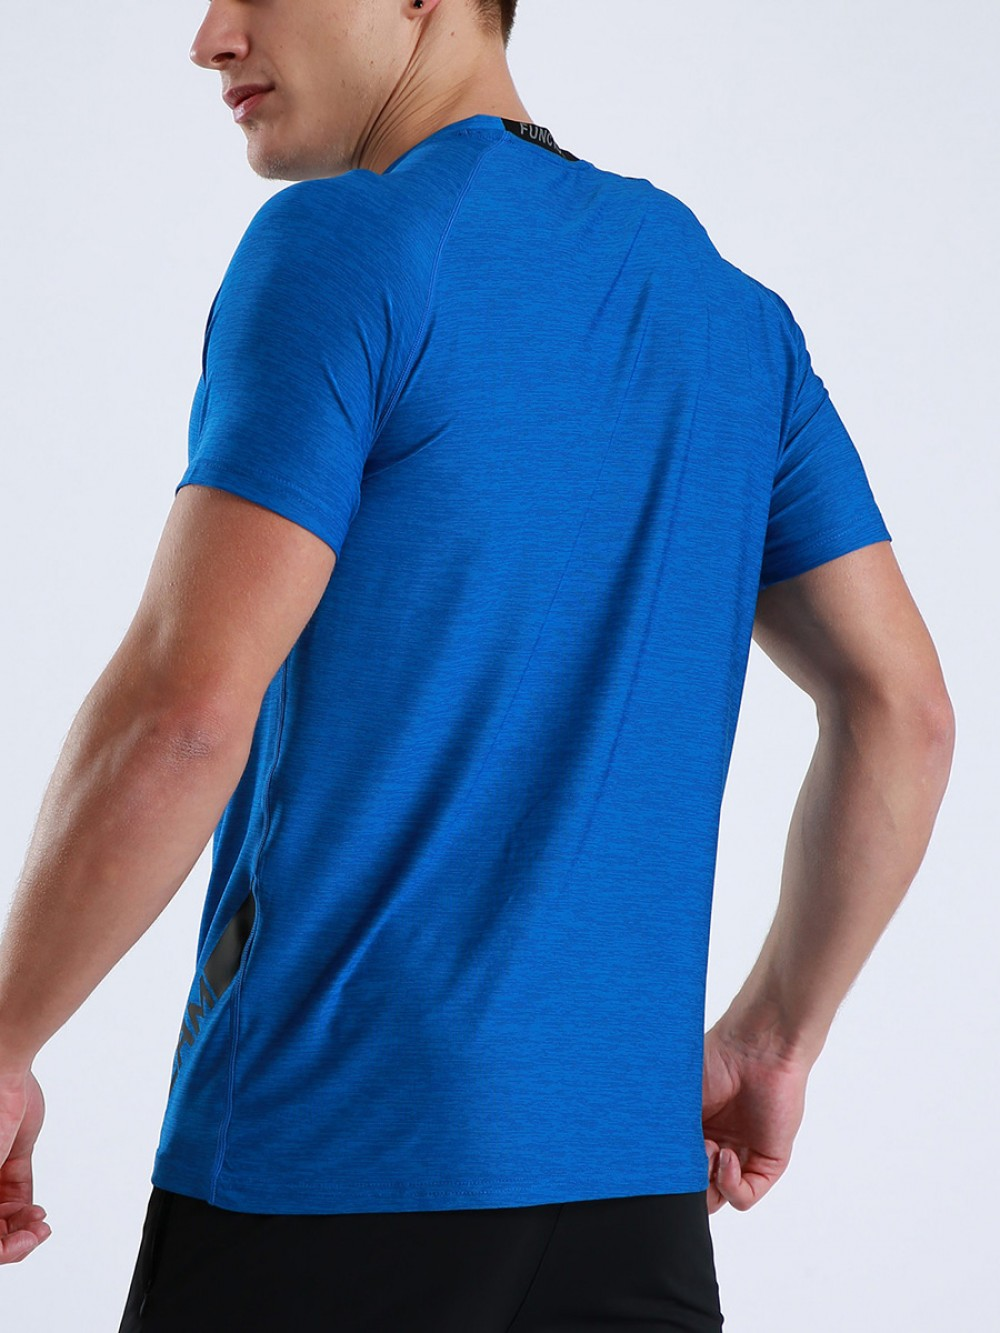 Glaring Blue Round Collar Athletic Top Solid Color Wholesale Online